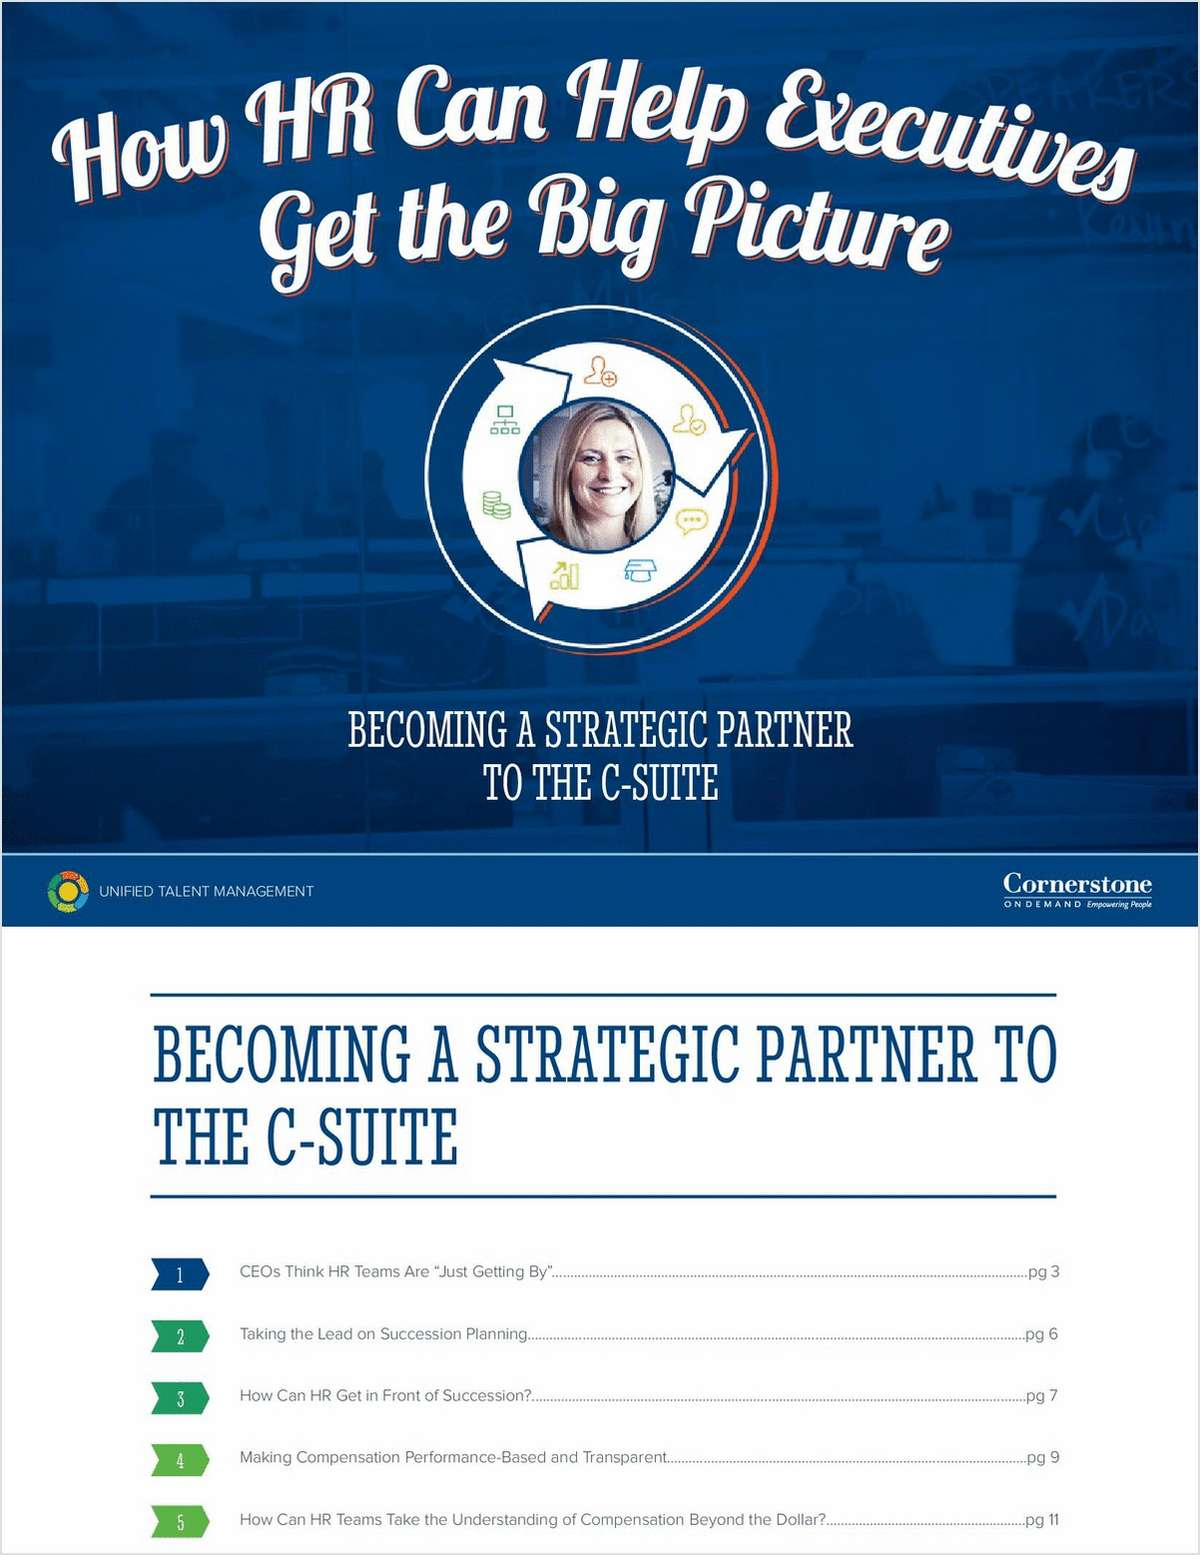 How HR Can Help Executives Get the Big Picture